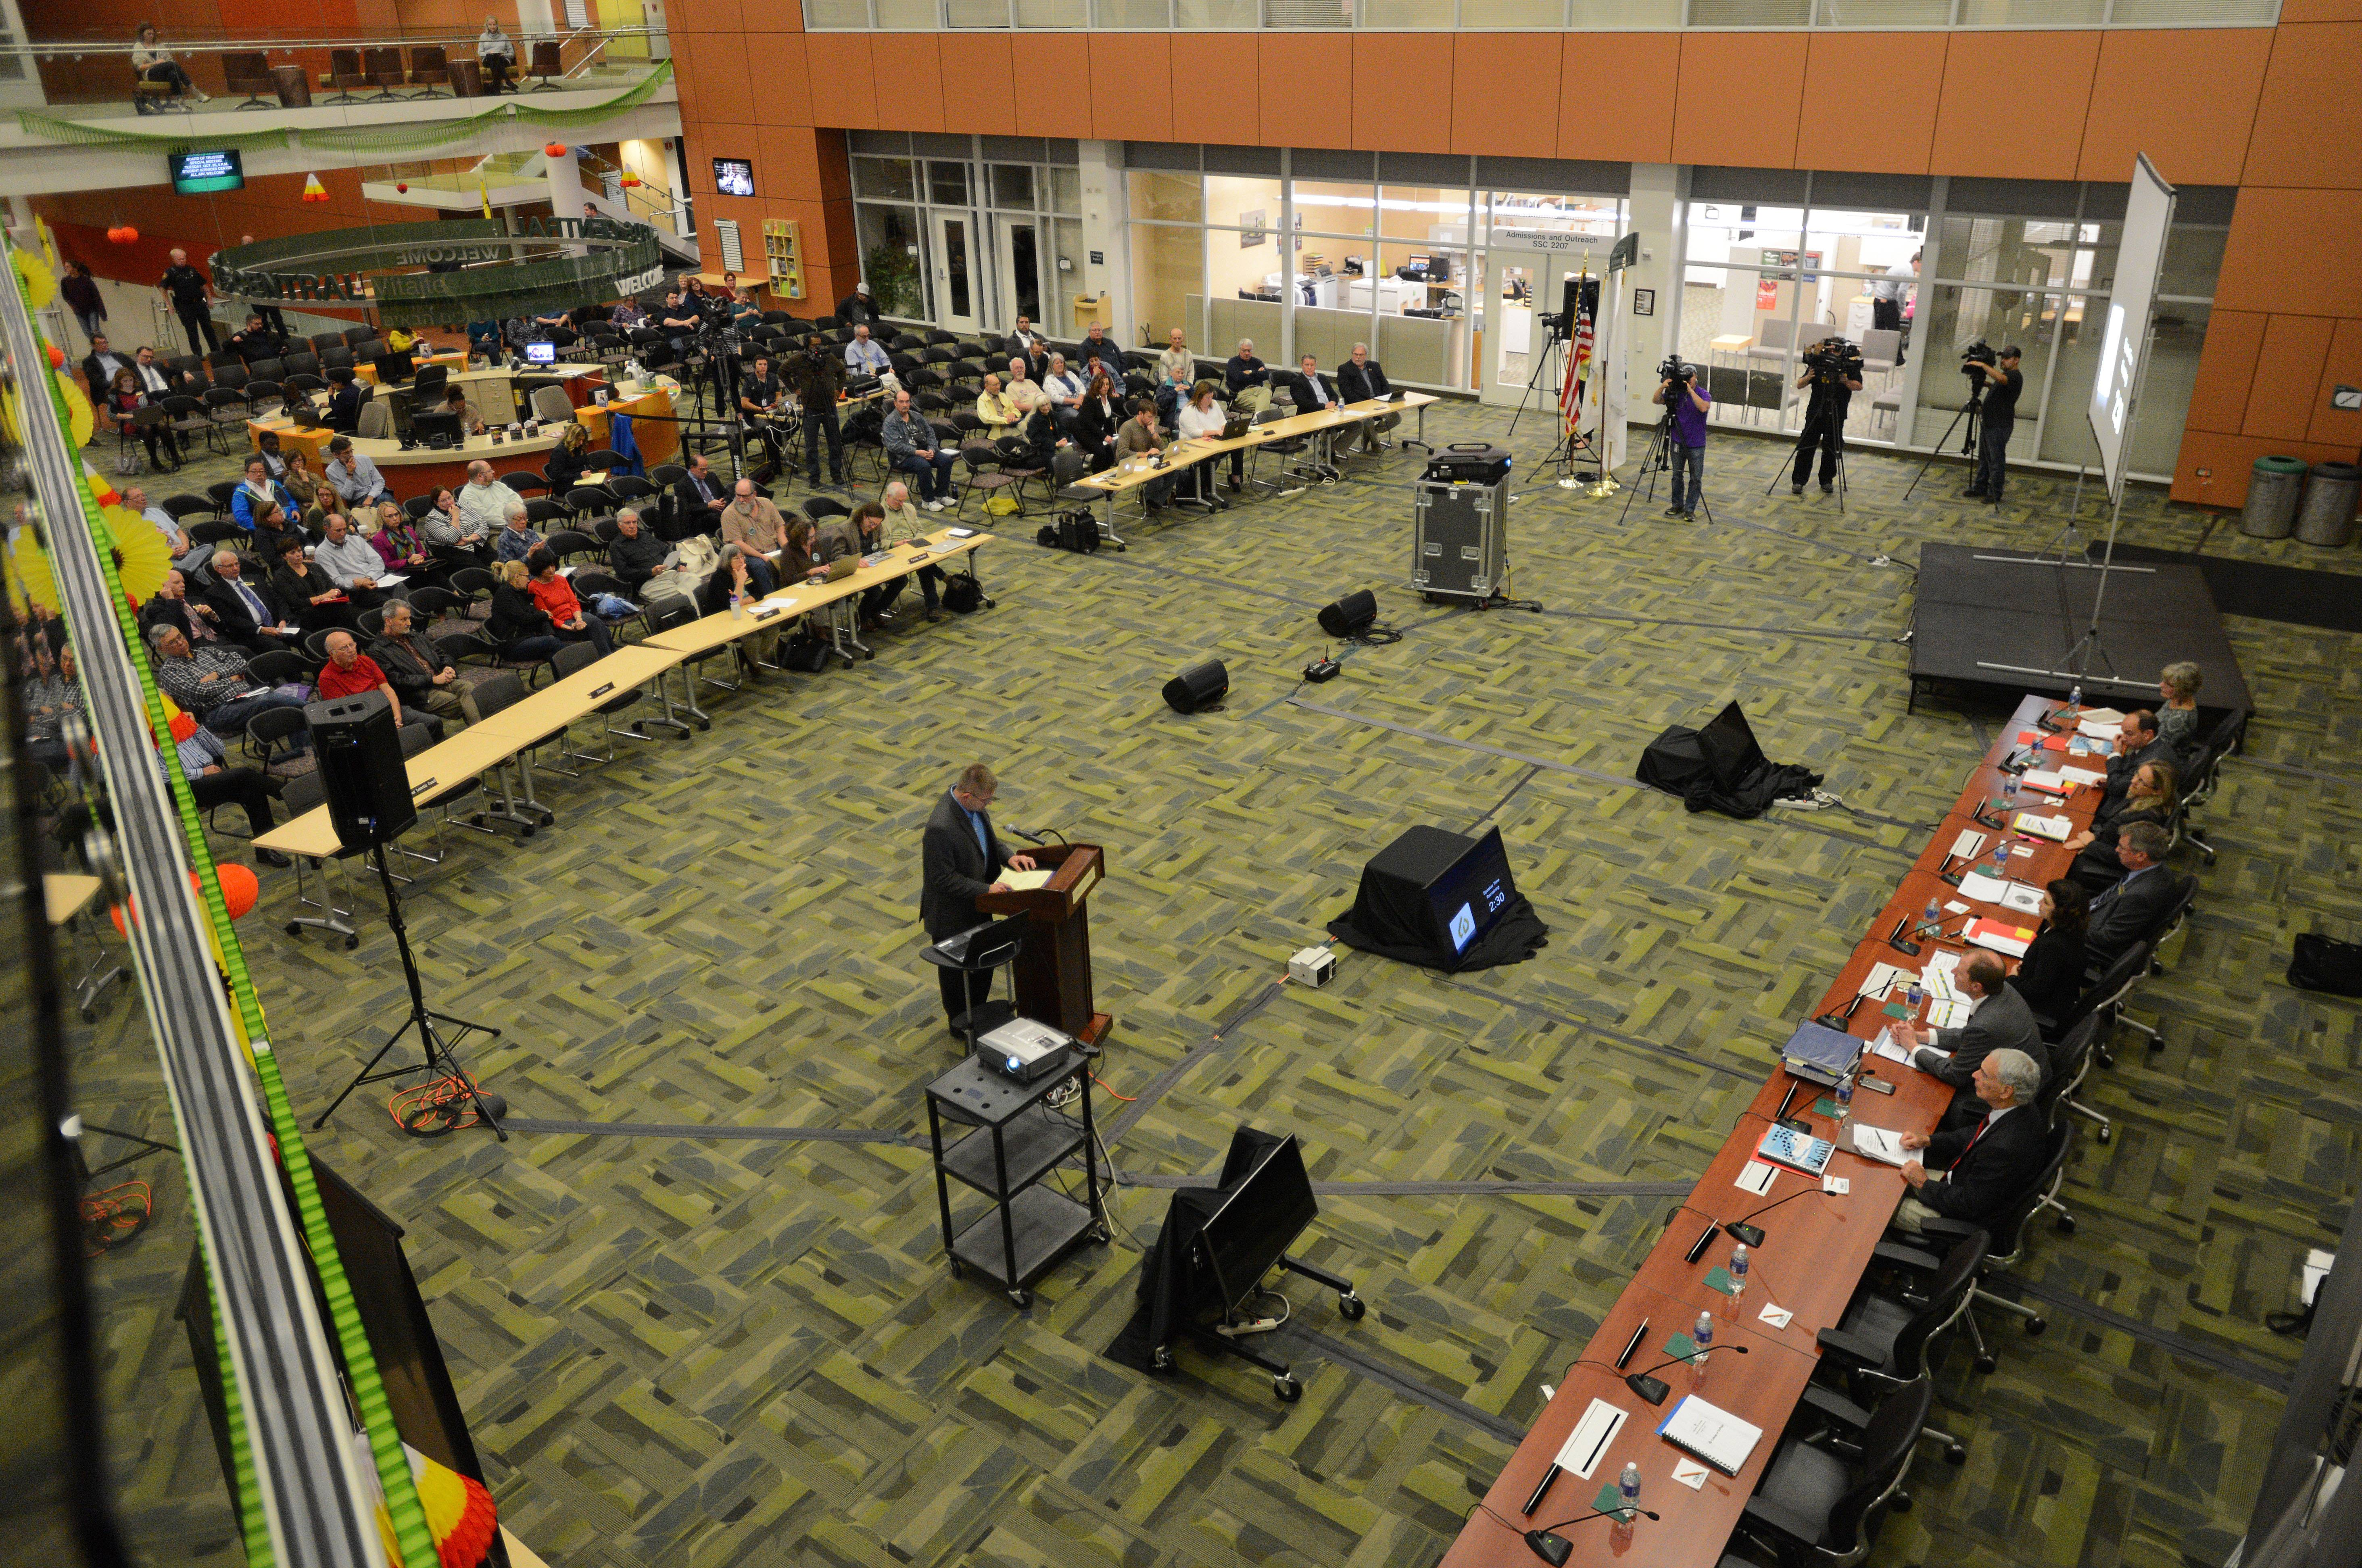 Editorial: It's leaders' responsibility to 'move forward' at College of DuPage